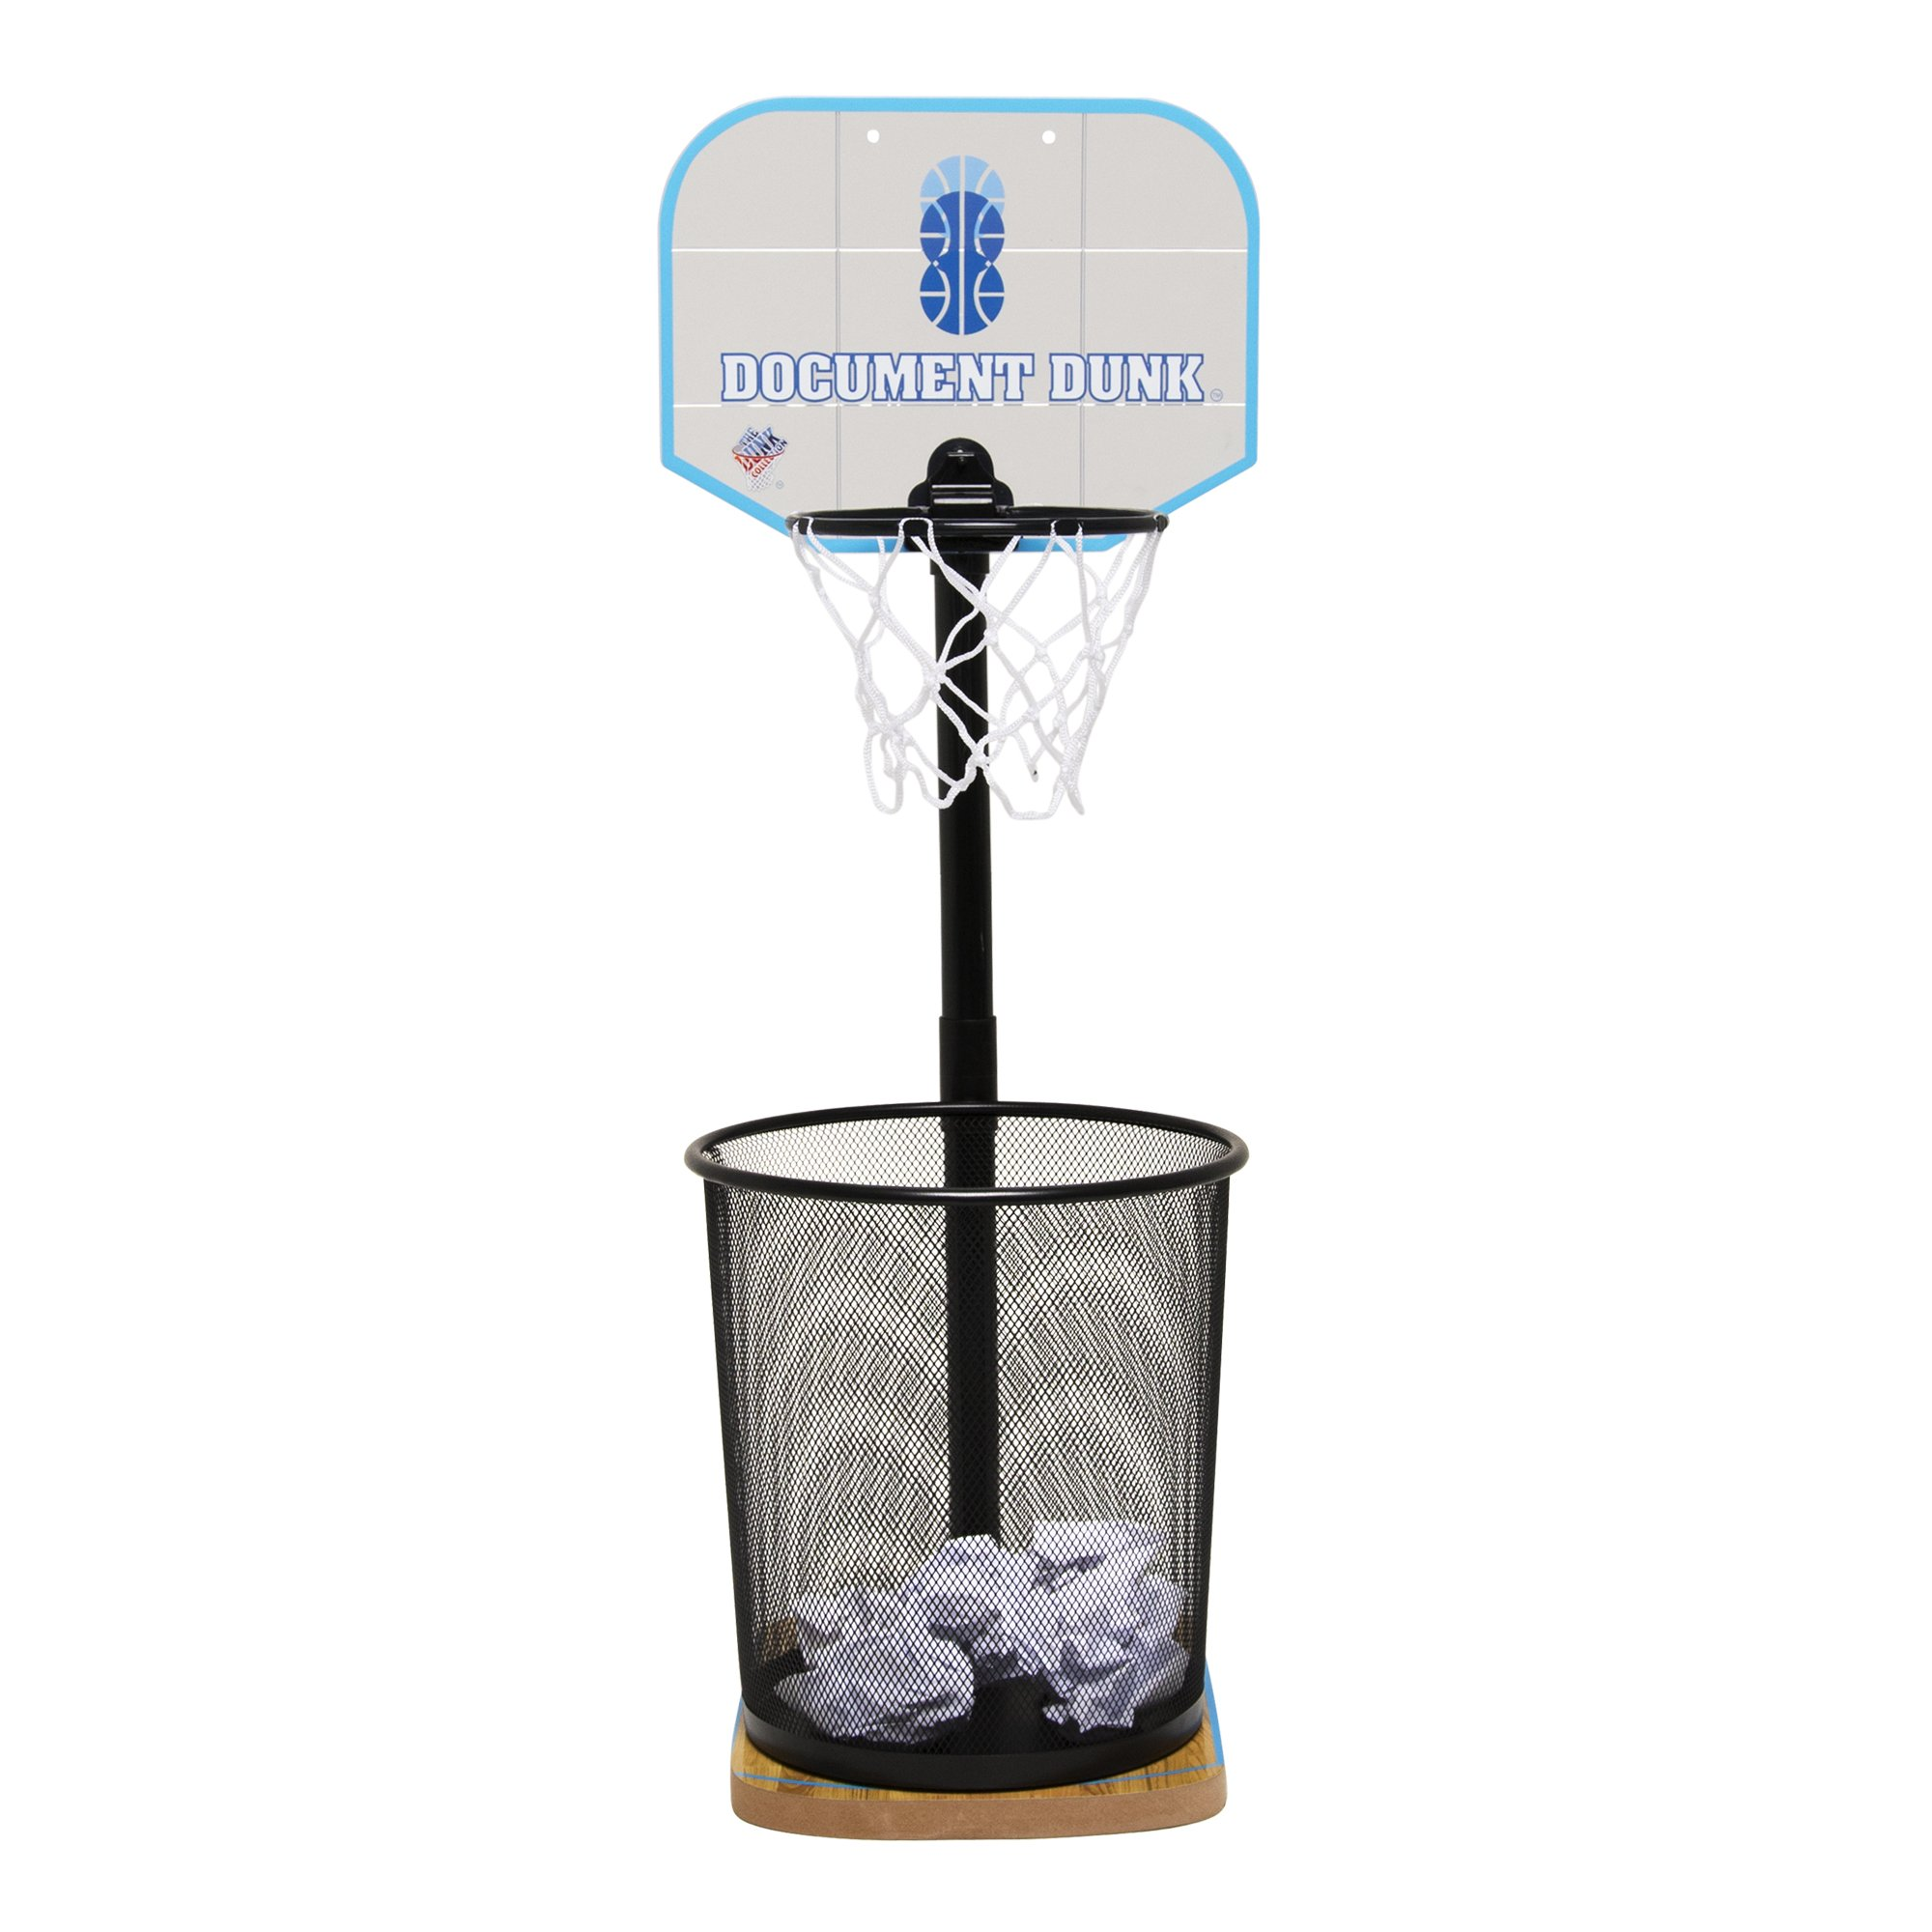 The Dunk Collection Document Dunk -The Trash Can Basketball Hoop for Office All-Stars (00022)